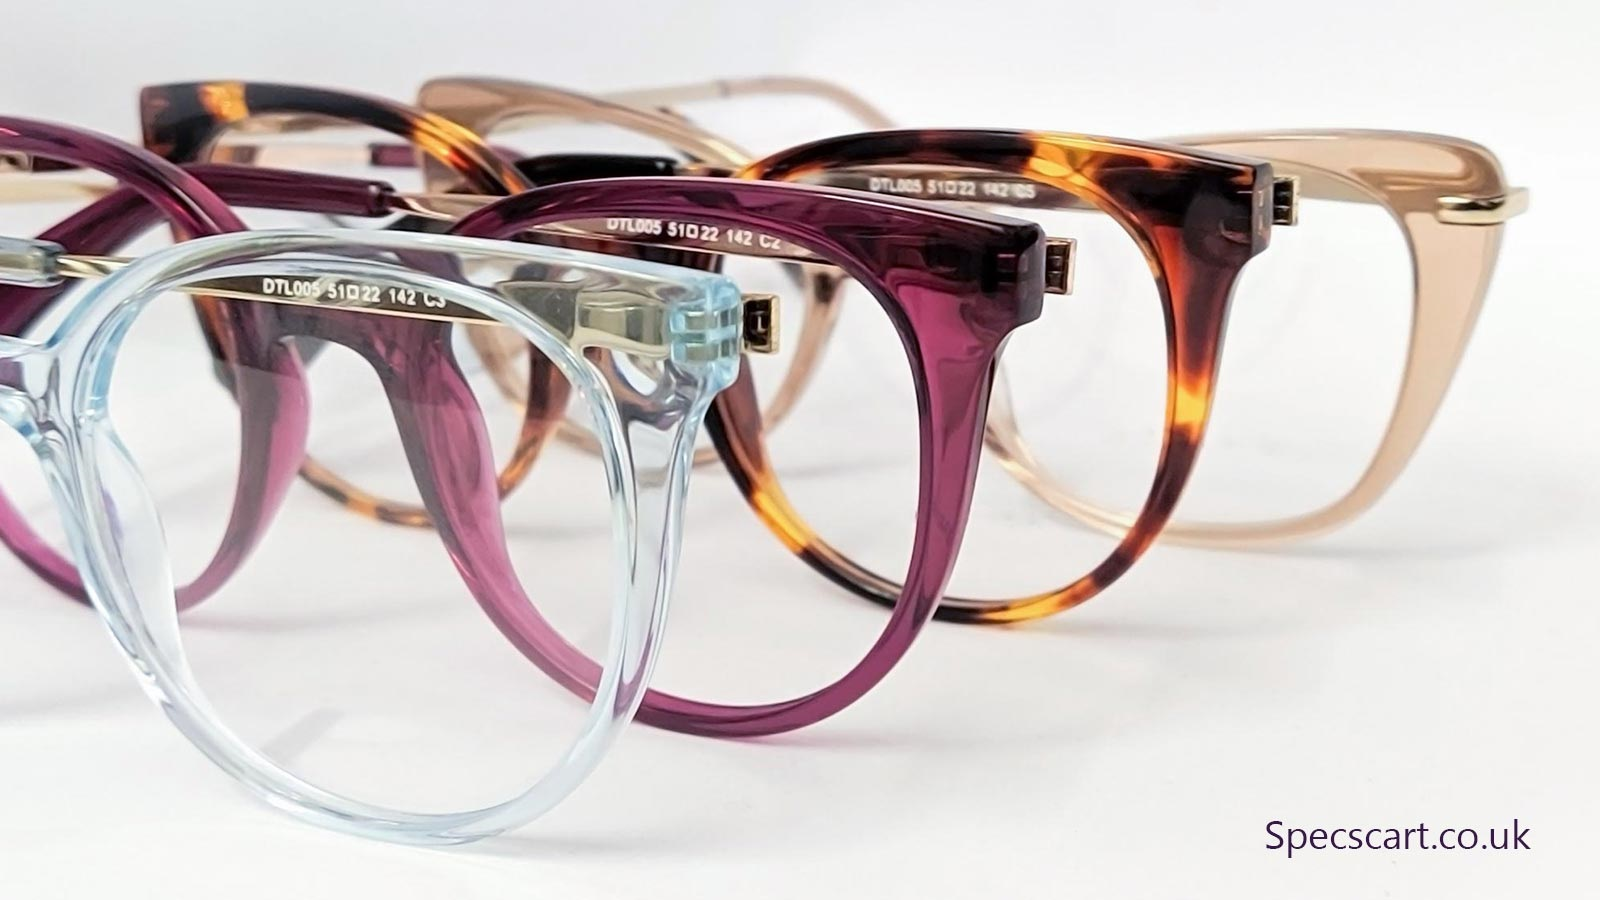 10 Tantalising Types of Glasses That Can Pull Eyes For You!